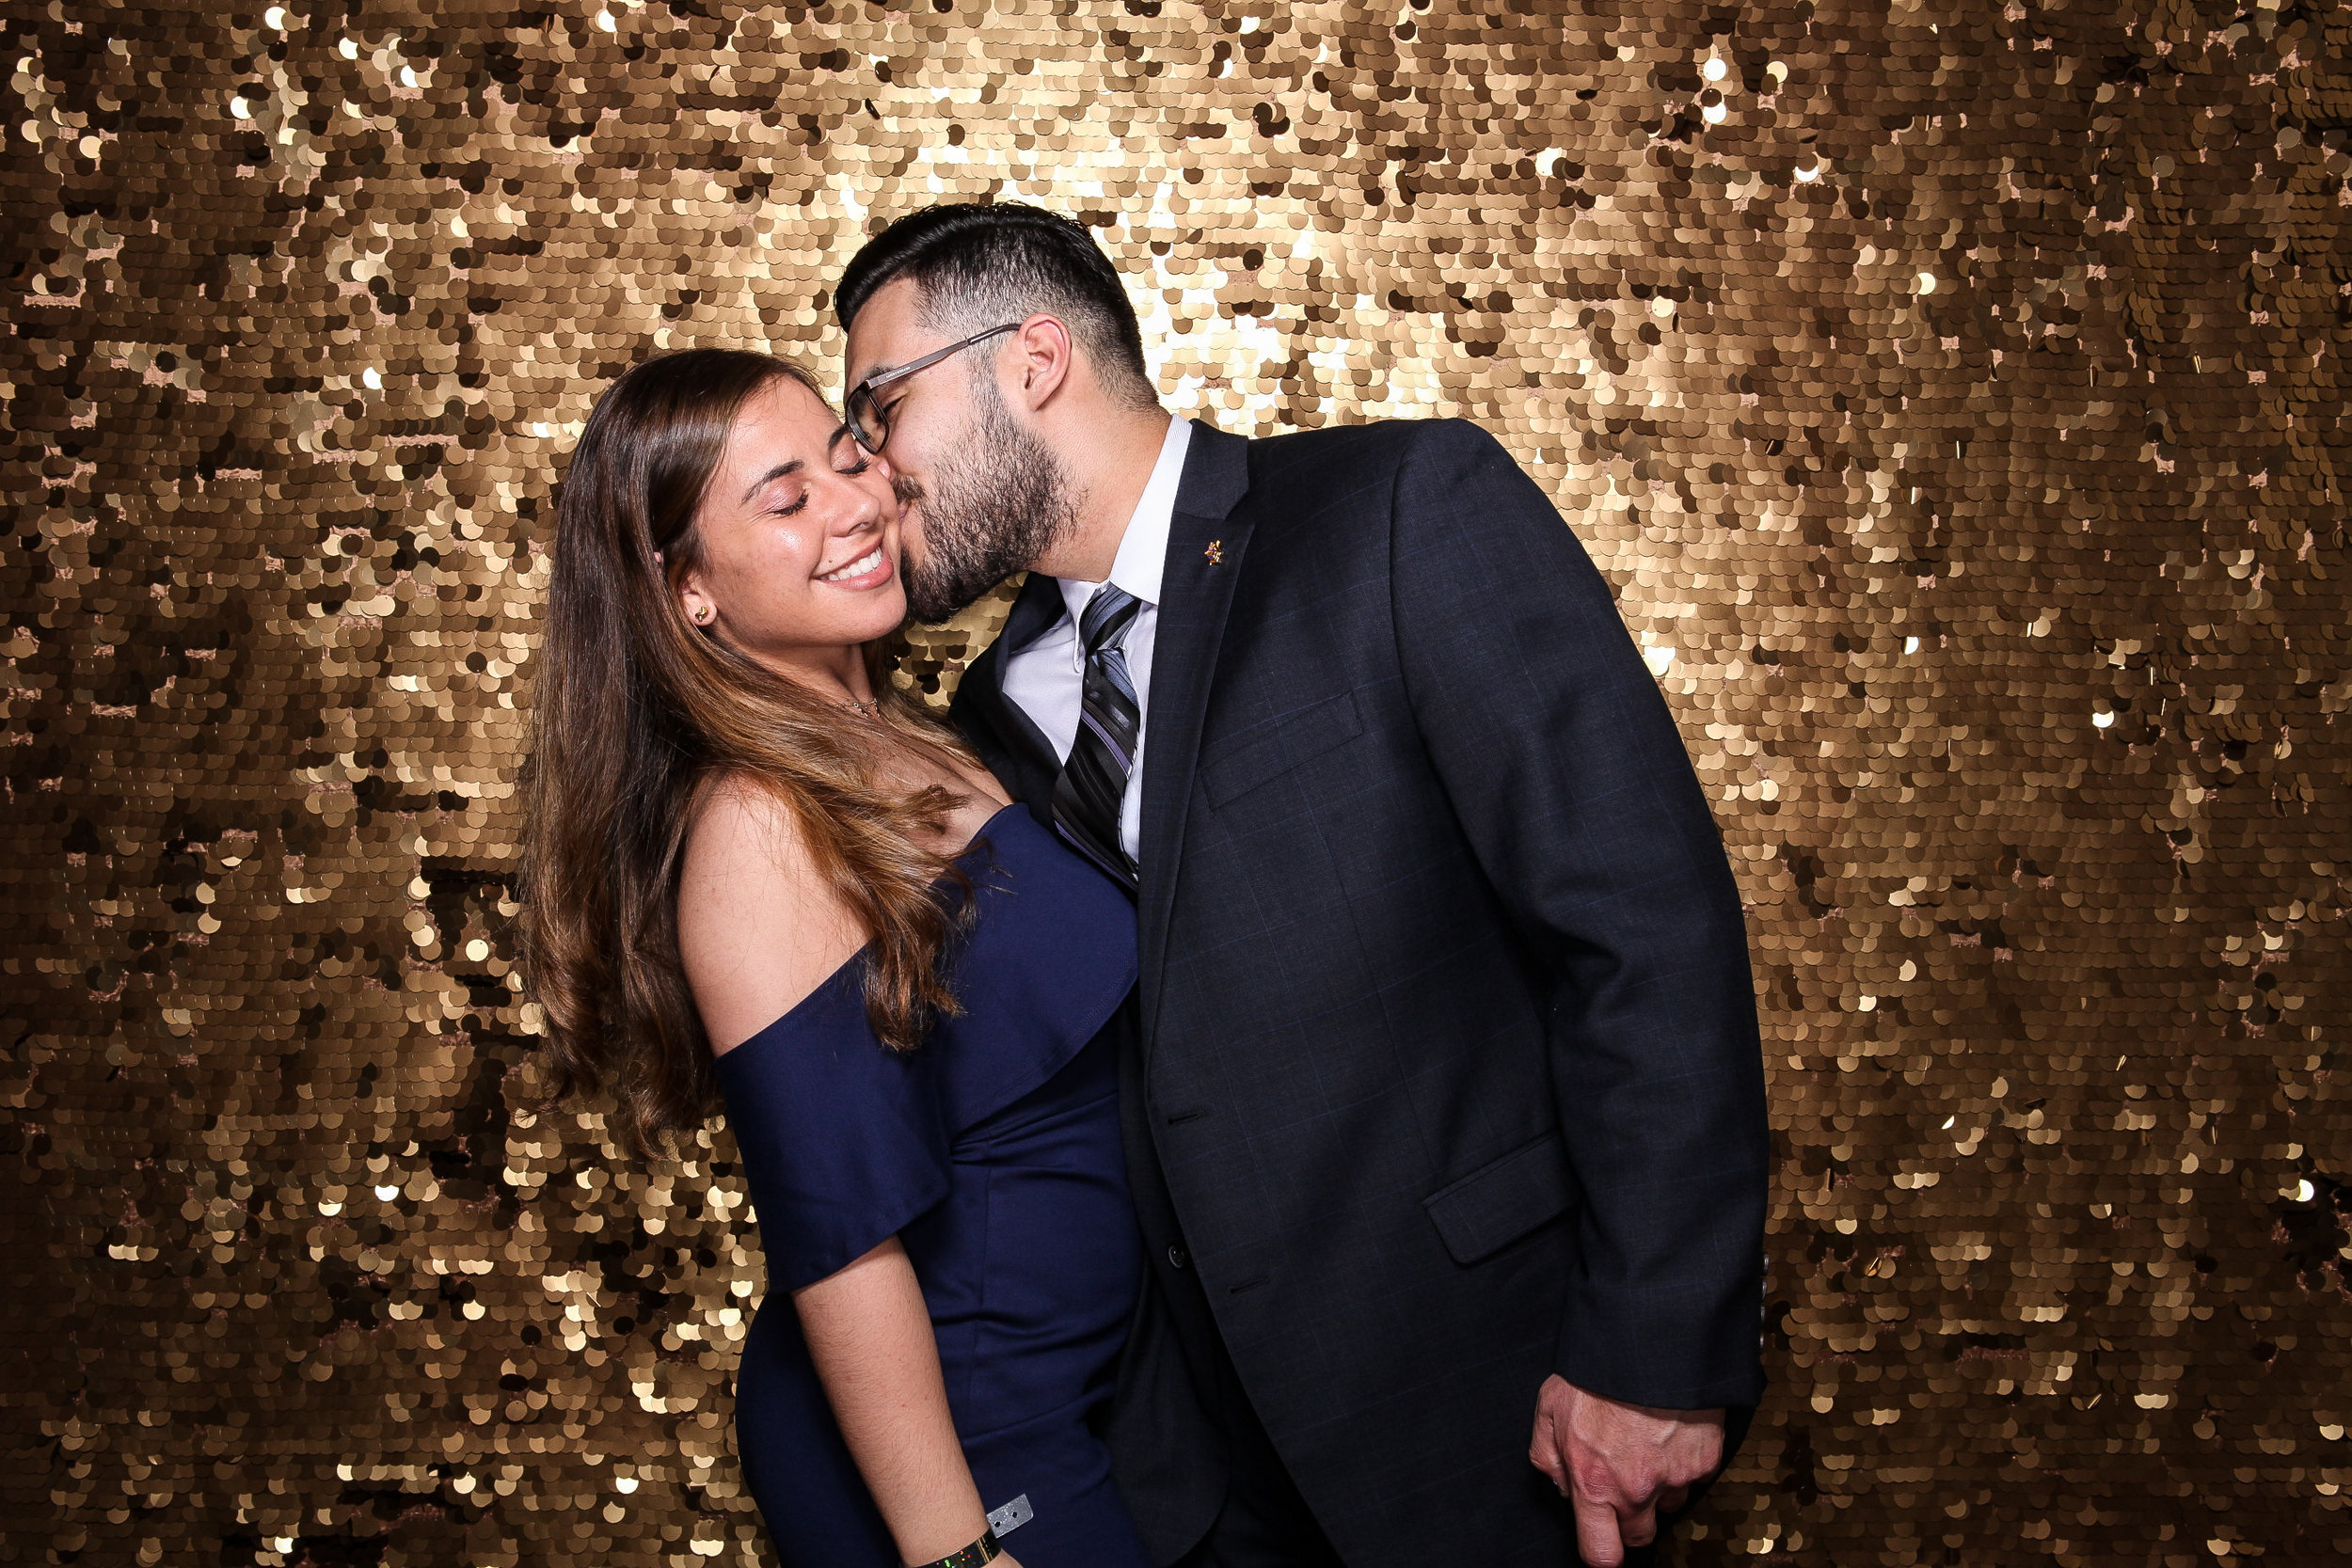 20190503_Adelphi_Senior_Formal-127.jpg